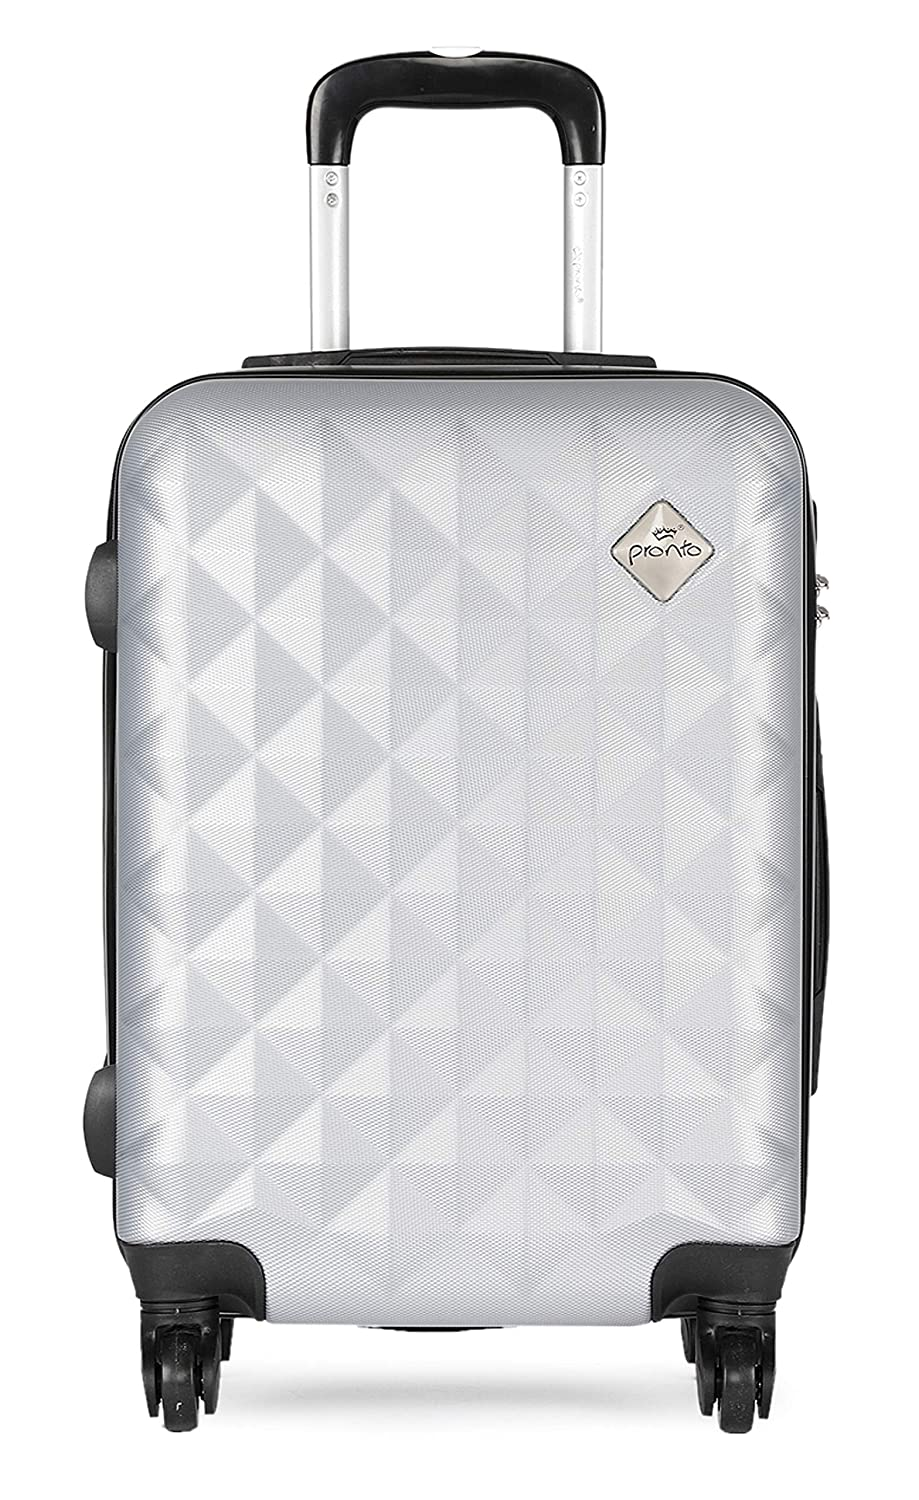 Pronto Naples ABS 55 cms Silver Hardsided Cabin Luggage (7807 - SL)